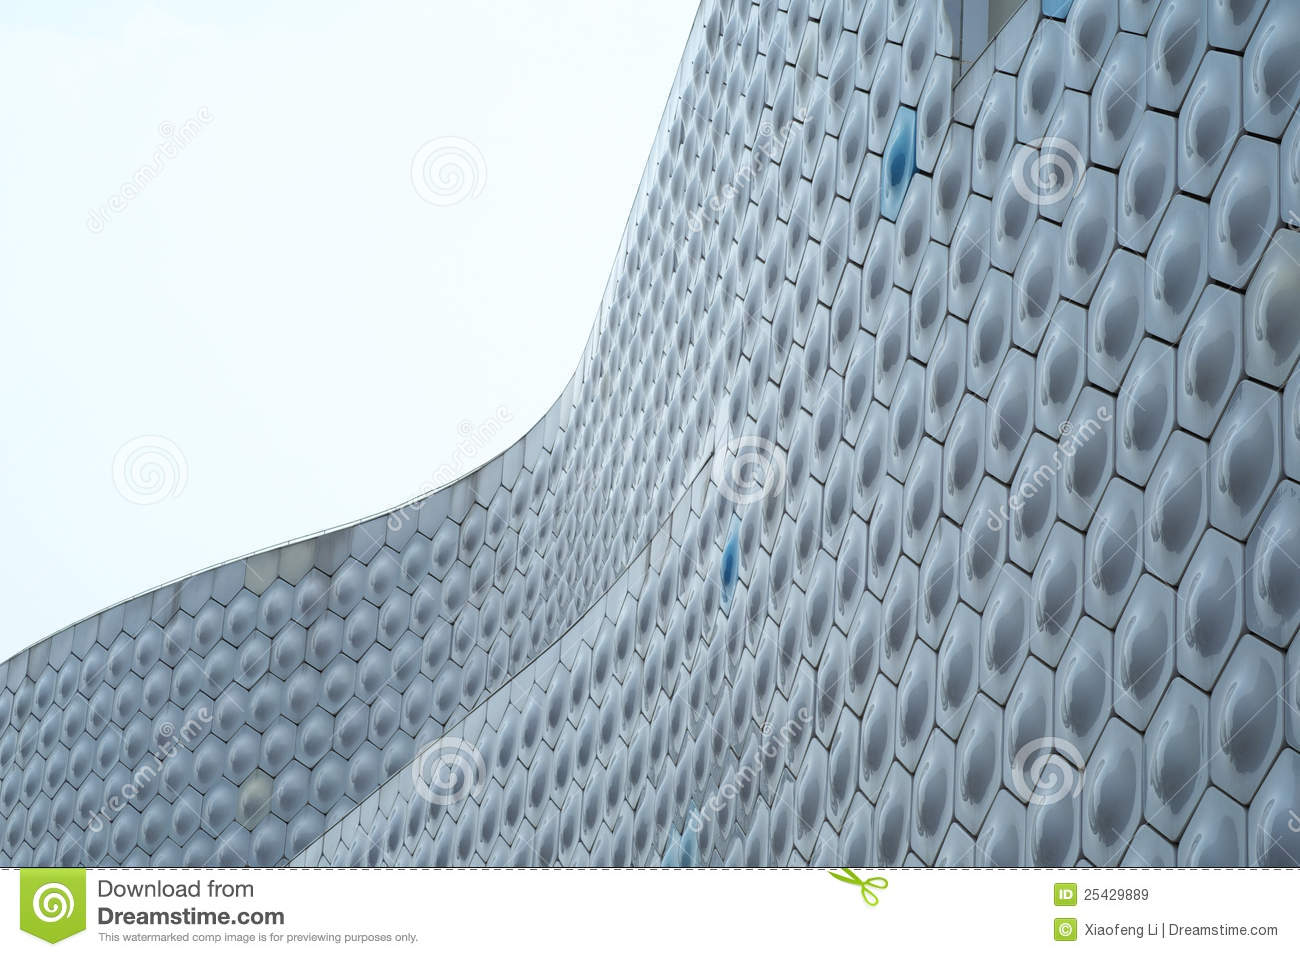 Honeycomb designs of exterior wall royalty free stock for Time saver details for exterior wall design